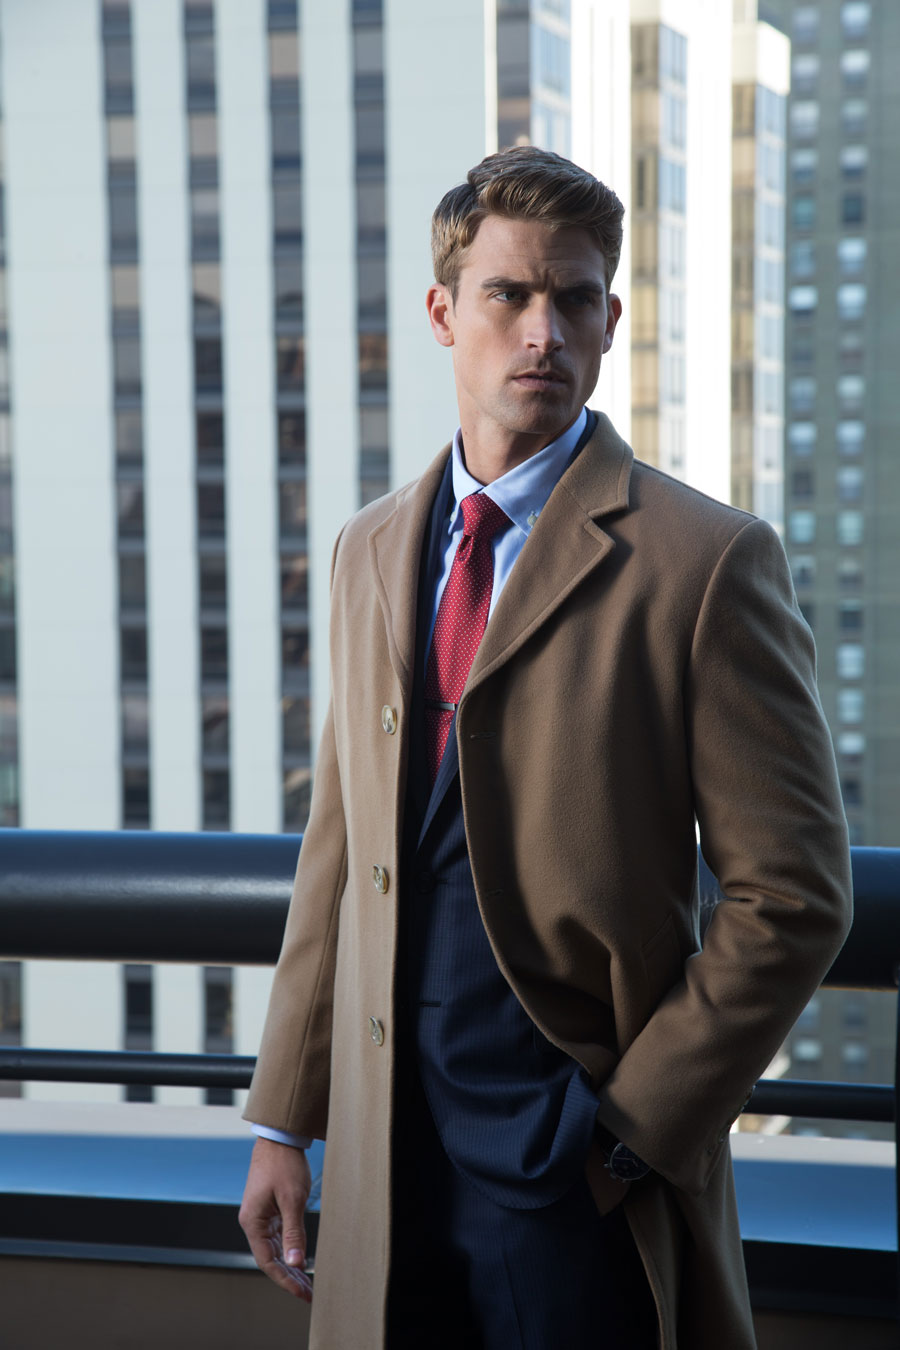 Camel-Cashmere-Custom-Overcoat-Outerwear-Navy-Tailormade-Suit-Lightblue-Shirt-Red-Tie-Winter-City-Balani-Chicago-900.jpg.jpg.jpg